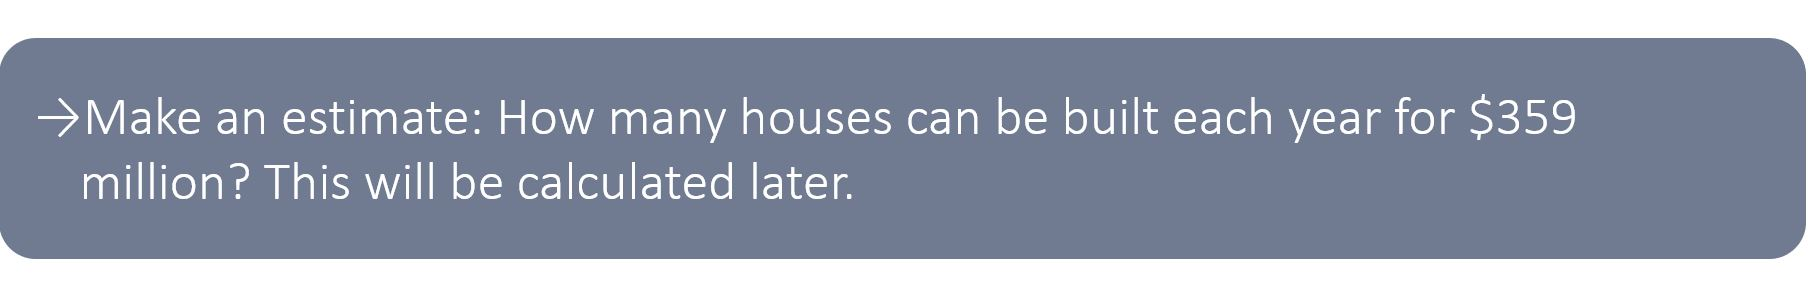 Make an estimate: How many houses can be built each year for $359 million?This will be calculated later on.